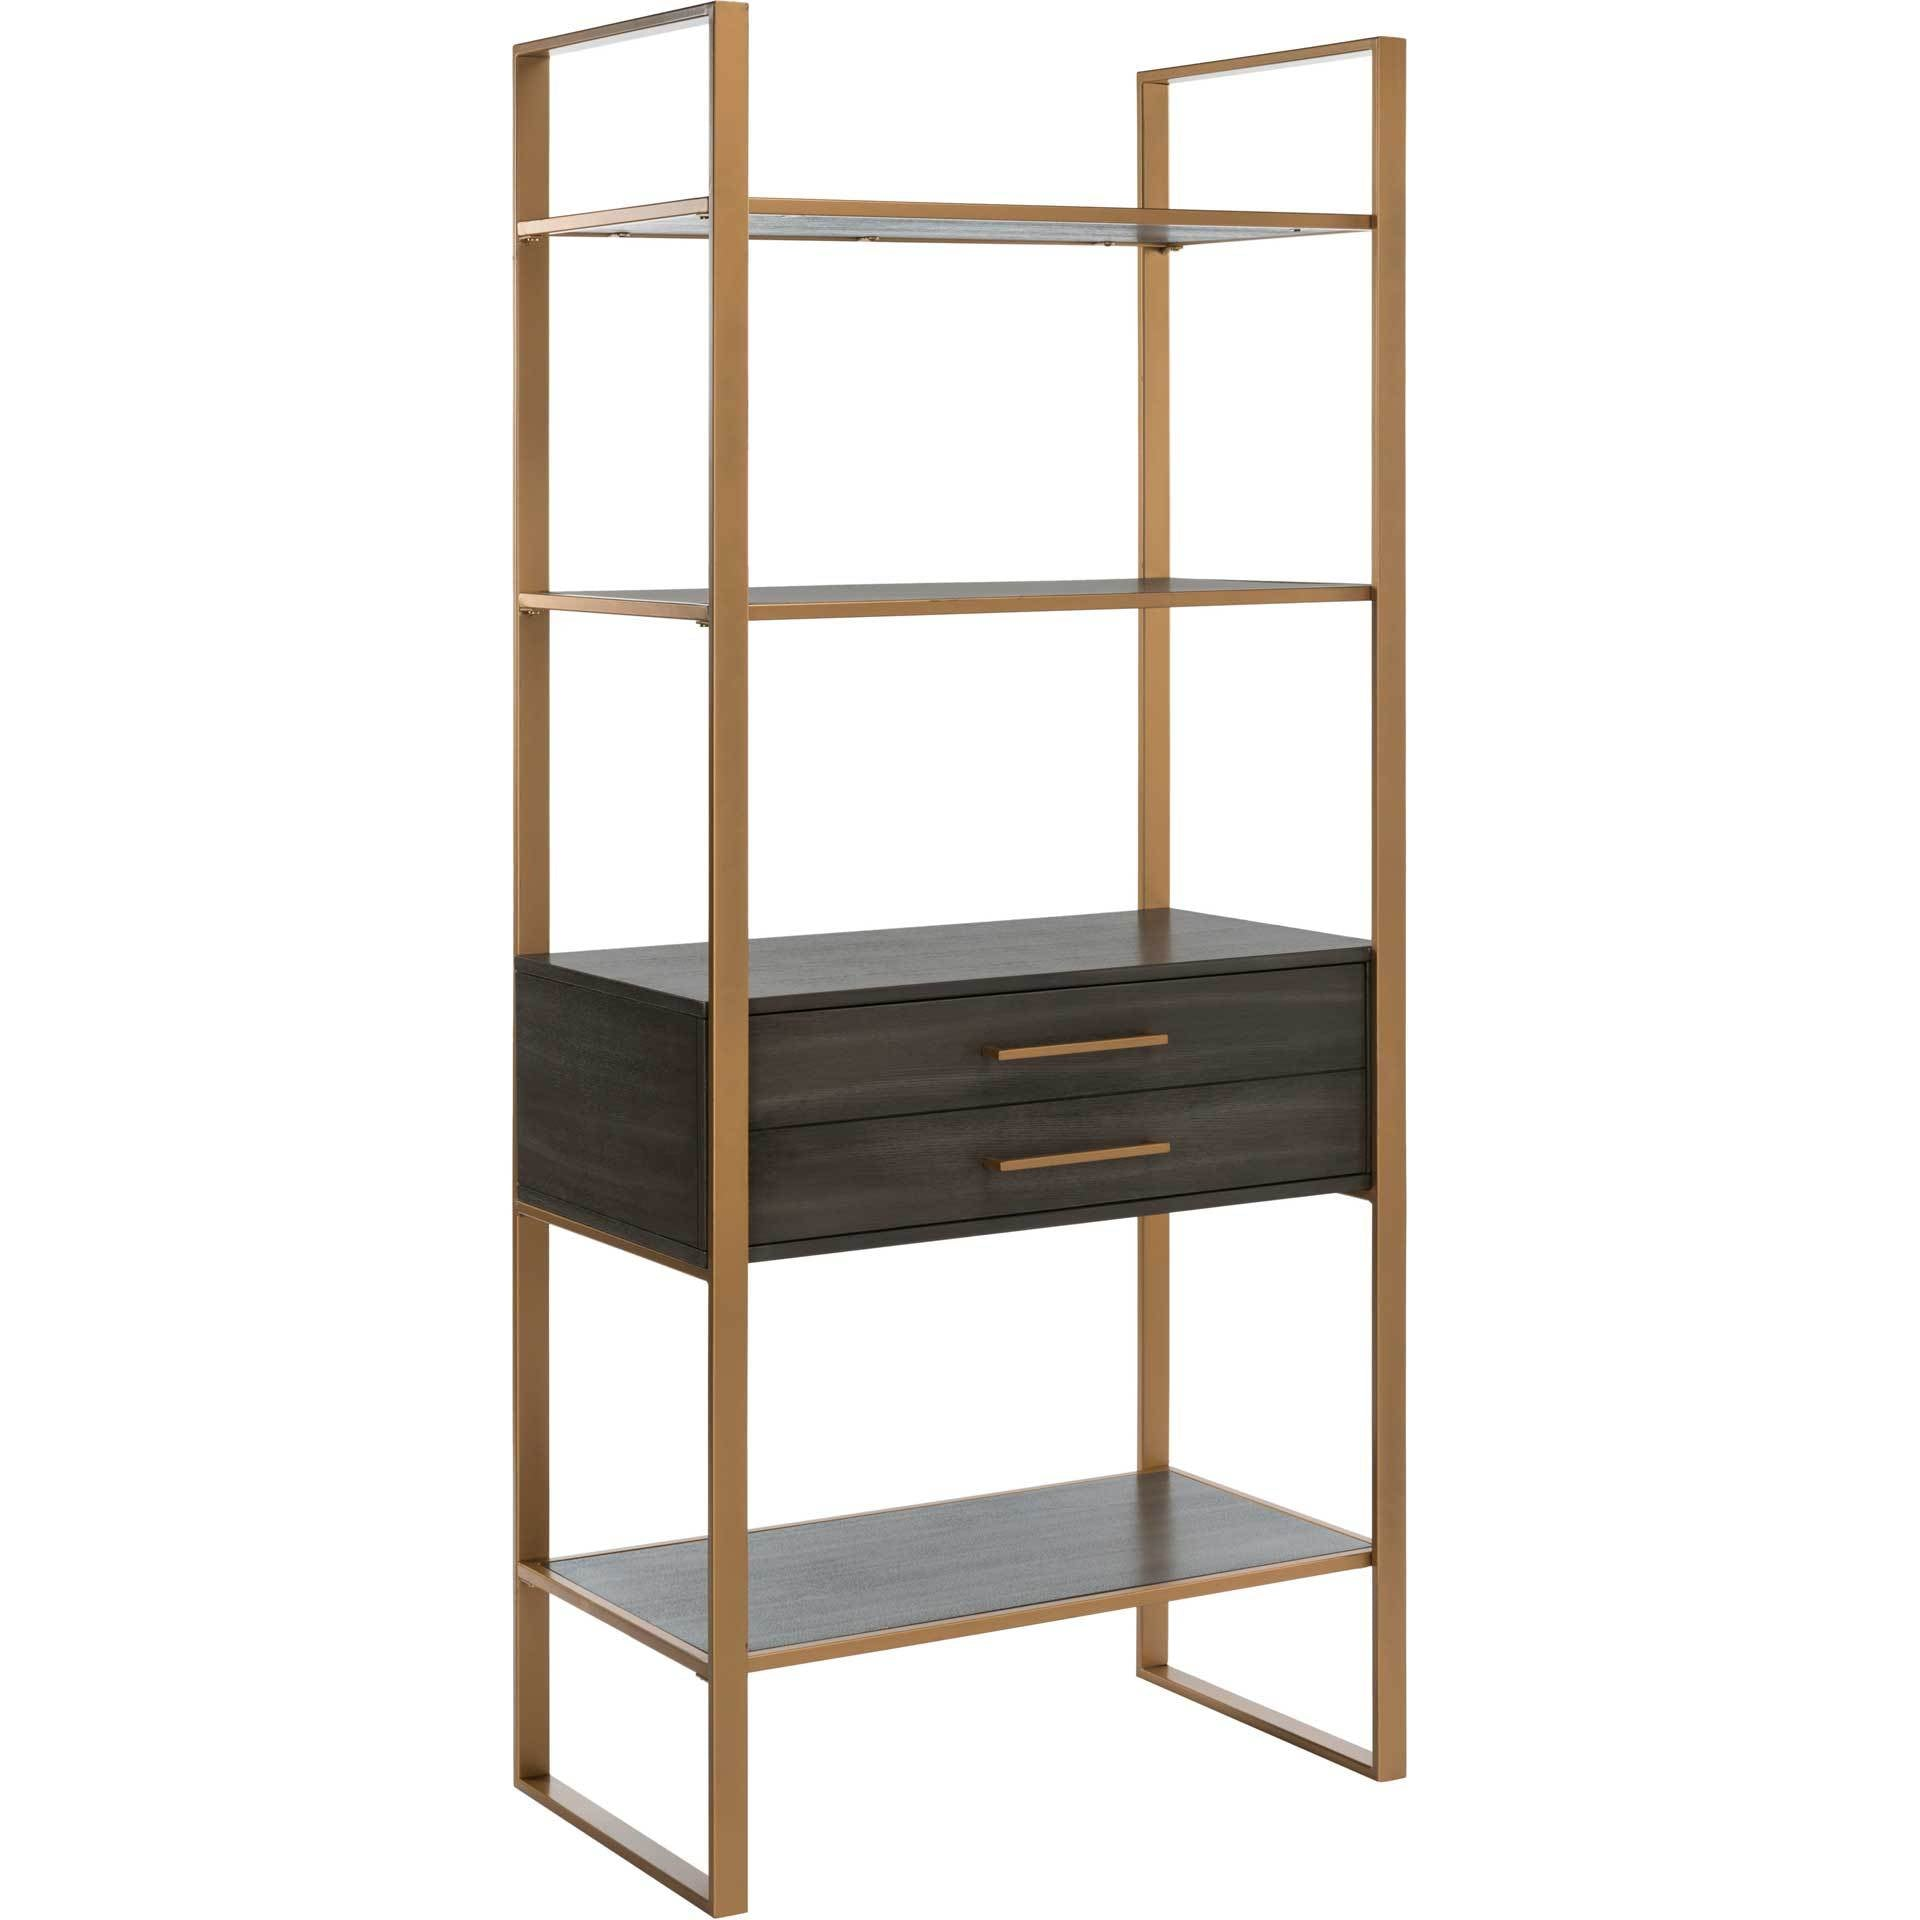 Skadi 4 Tier 1 Drawer Etagere Gold/Gray Oak